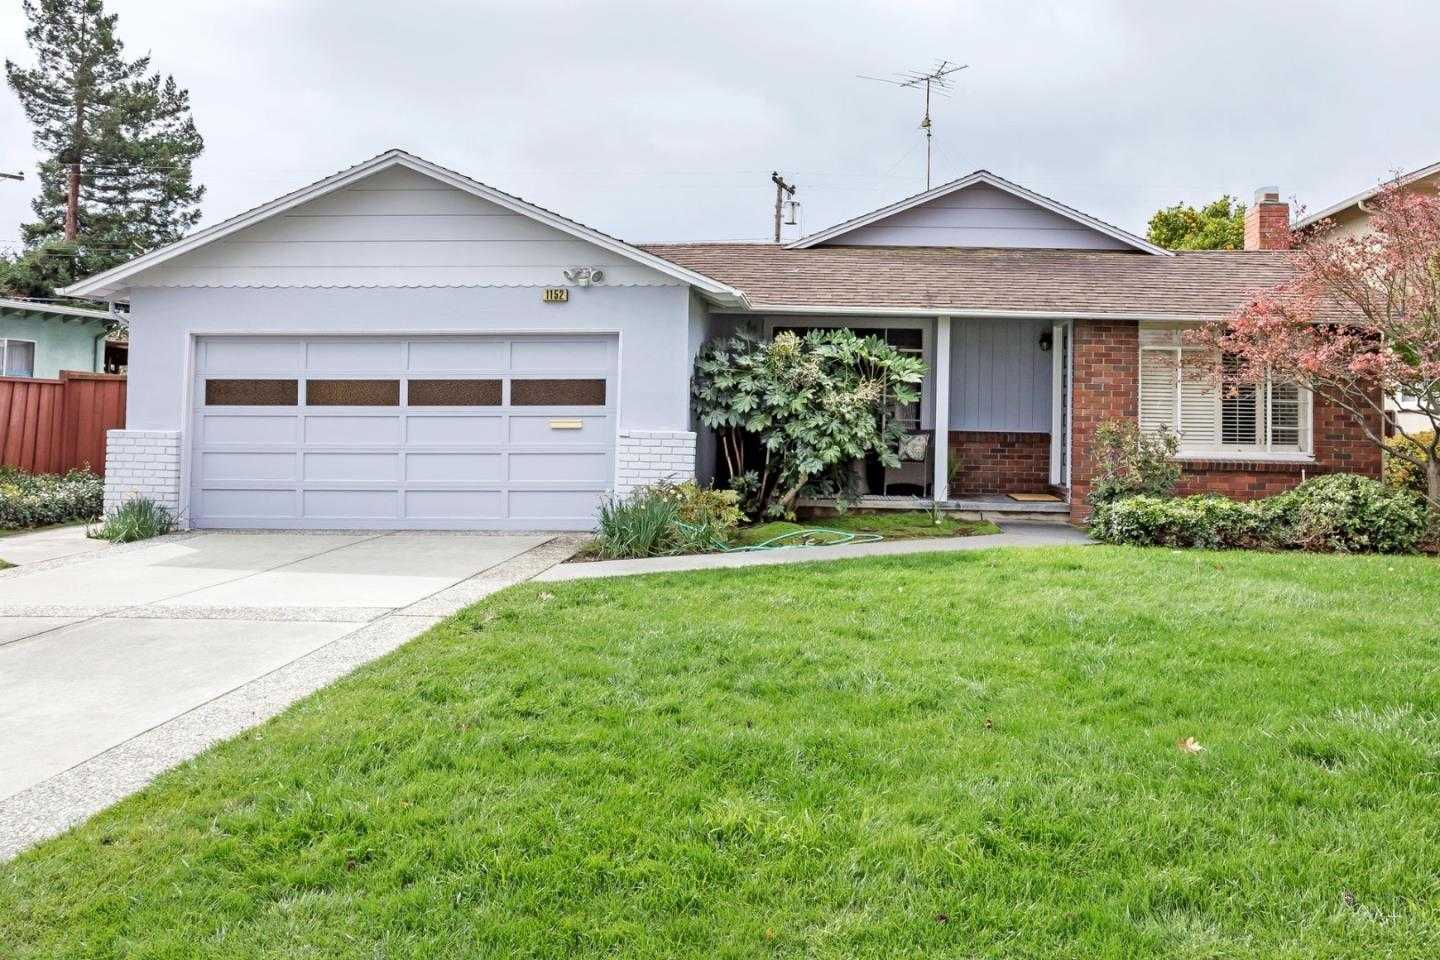 $1,799,000 - 3Br/3Ba -  for Sale in Sunnyvale